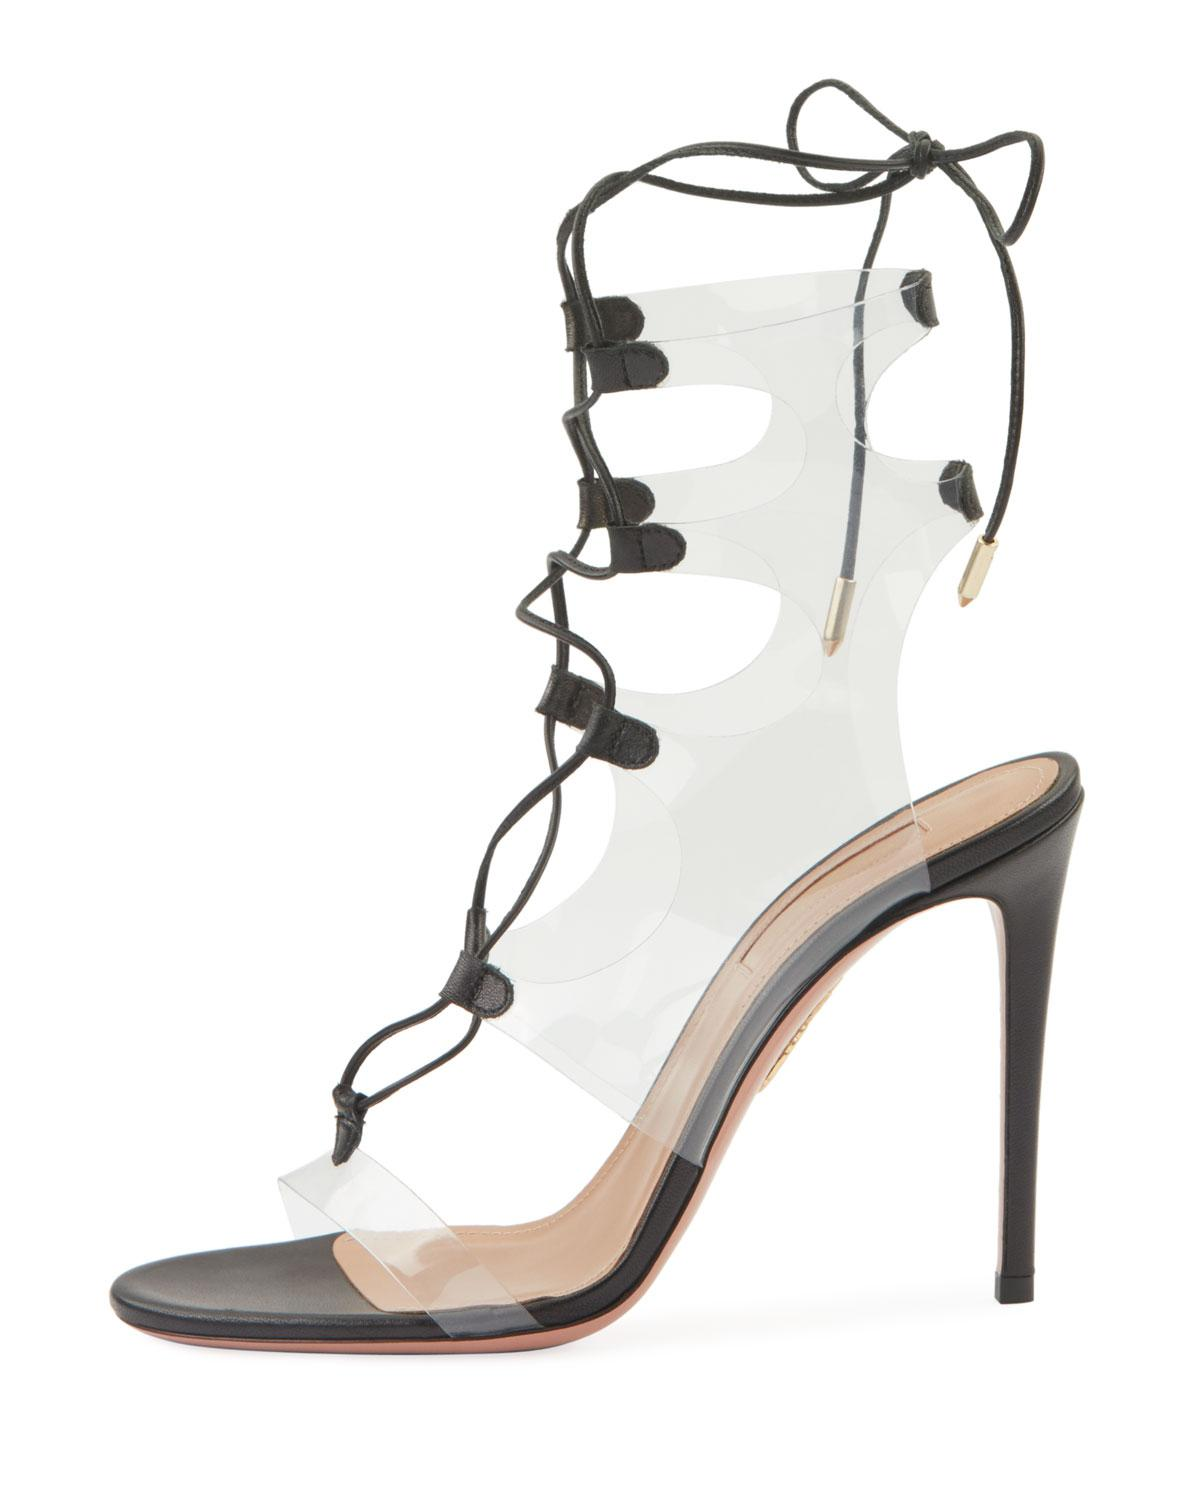 079163cc546 Lyst - Aquazzura Milos 105 See-through Sandals in Black